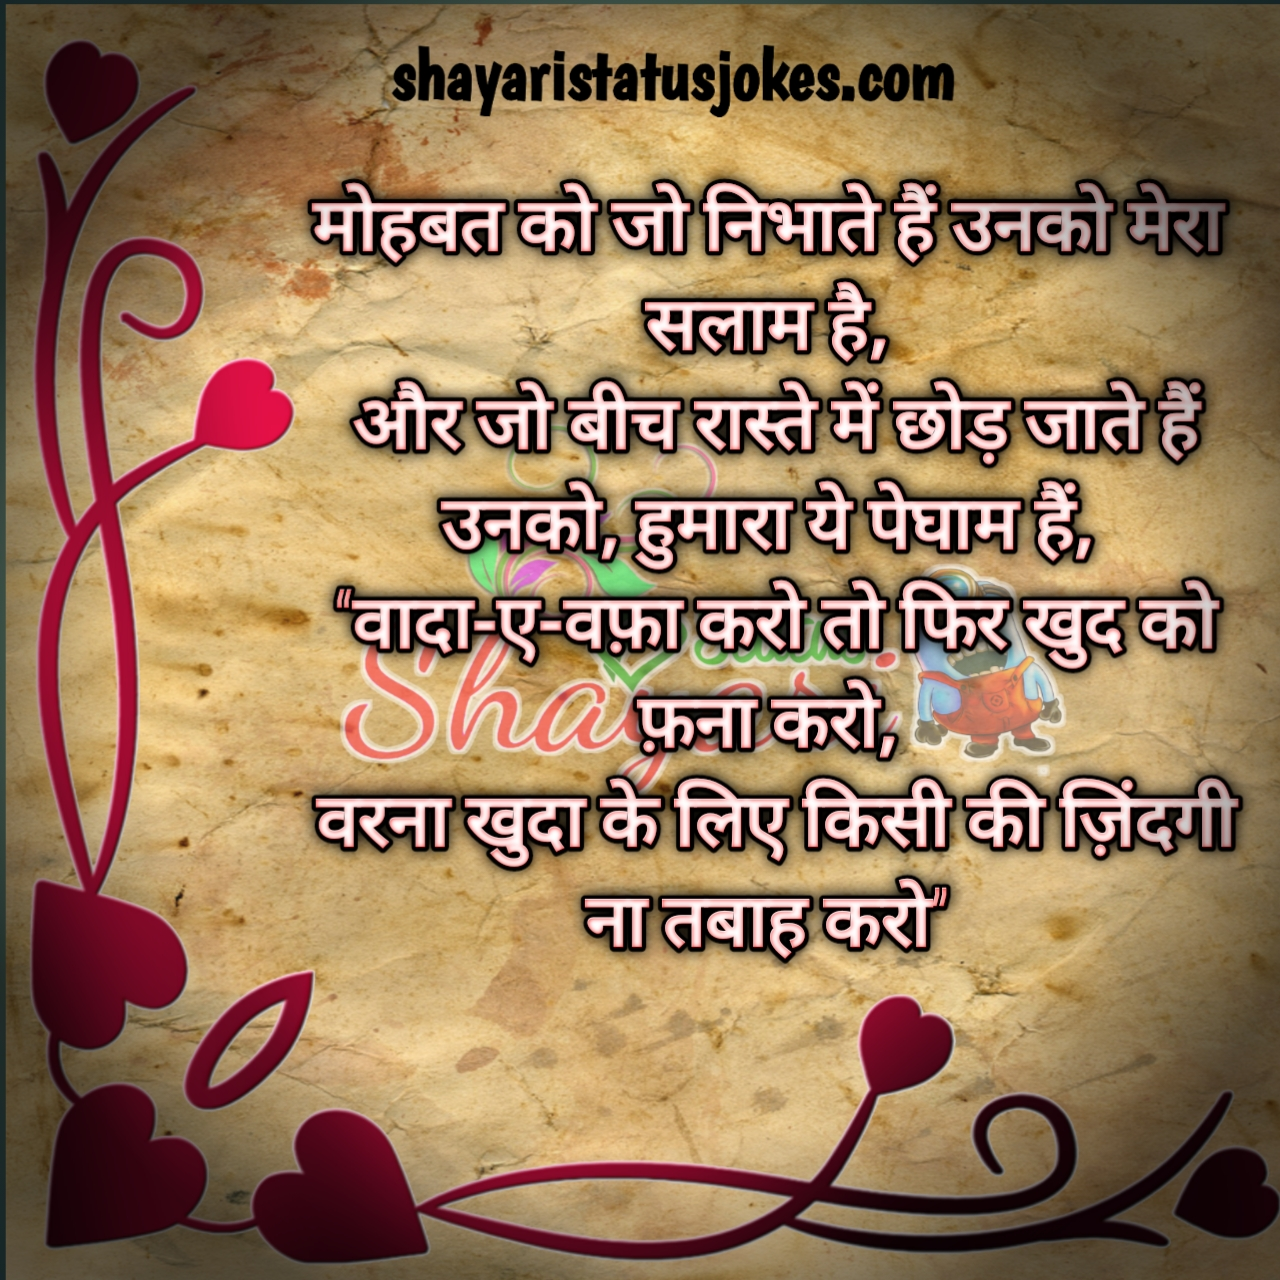 Love Shayari: Hey guys here we have published a love Shayari image In Hindi with beautiful Shayari images Lovely Shayari there is tremendous love Shayari photo. You will not find such Love Shayari Image Hd anywhere else. Read it and you will know This is specially designed for you with love Shayari images My dear friends here is the best love Shayari in Hindi for you Hope you like this Love Shayari post. Love is a seasoned feeling of the heart and needs to express. Love poetry is an effective way to express the sentiments of love. We have the vastest collection of Love Shayari in Hindi (लव शायरी) for Whatsapp & Facebook Status. Read these Shayari about Love in Hindi and English scripts both. New Hindi Love Shayari 2021. If you are searching for love poetry like true love Shayari, new love status for WhatsApp DP or love Shayari wallpaper, then you are in the right place. Express your love feelings to your lover with a right Shayari on love.